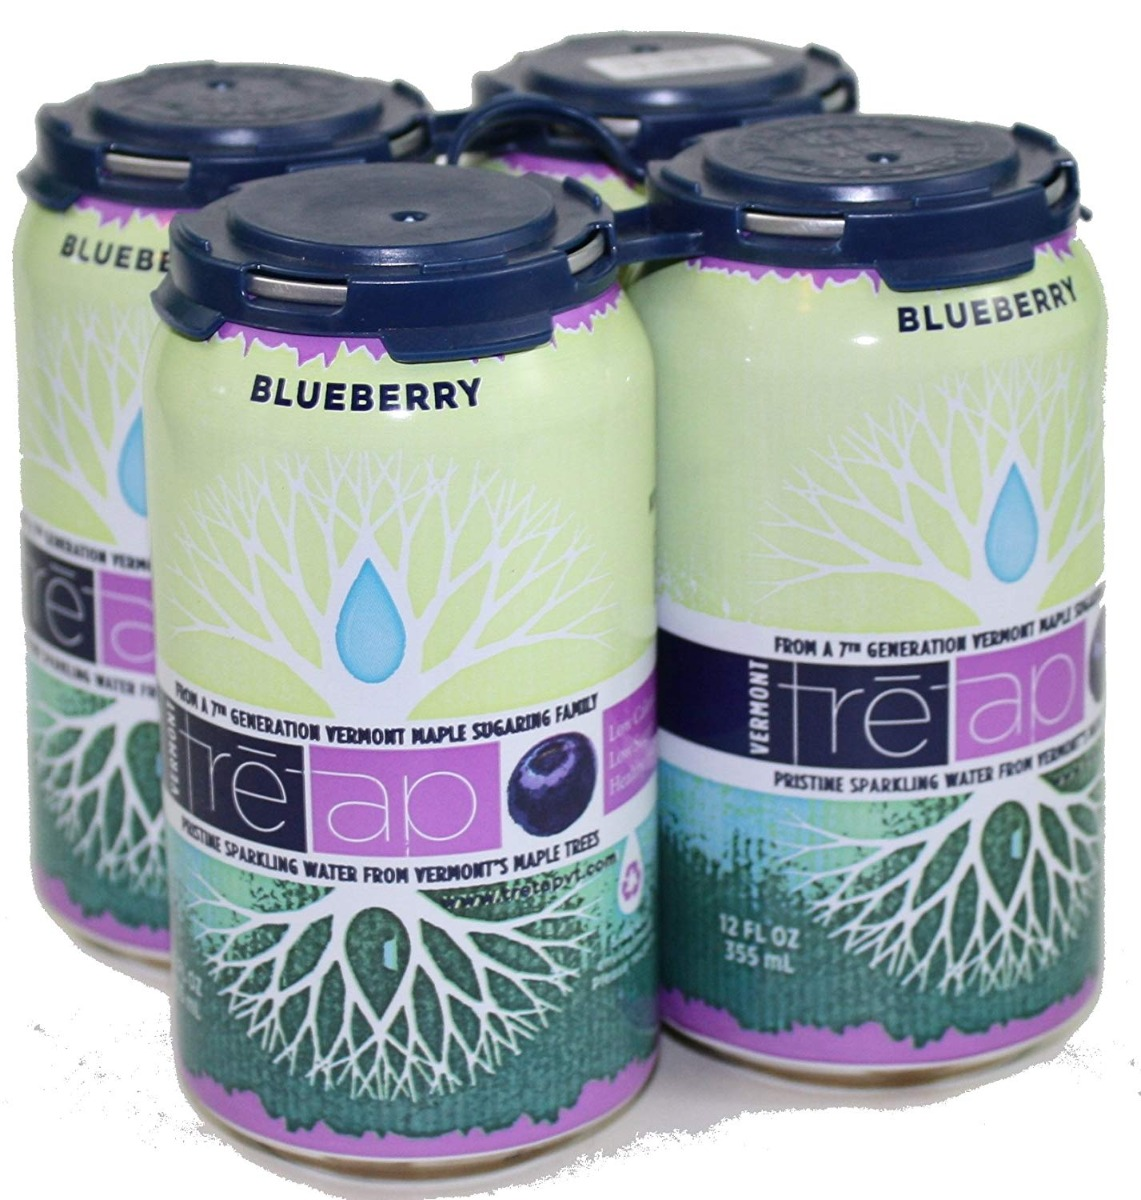 TRETAP: Blueberry Sparkling Water 4 Pack, 48 fl oz